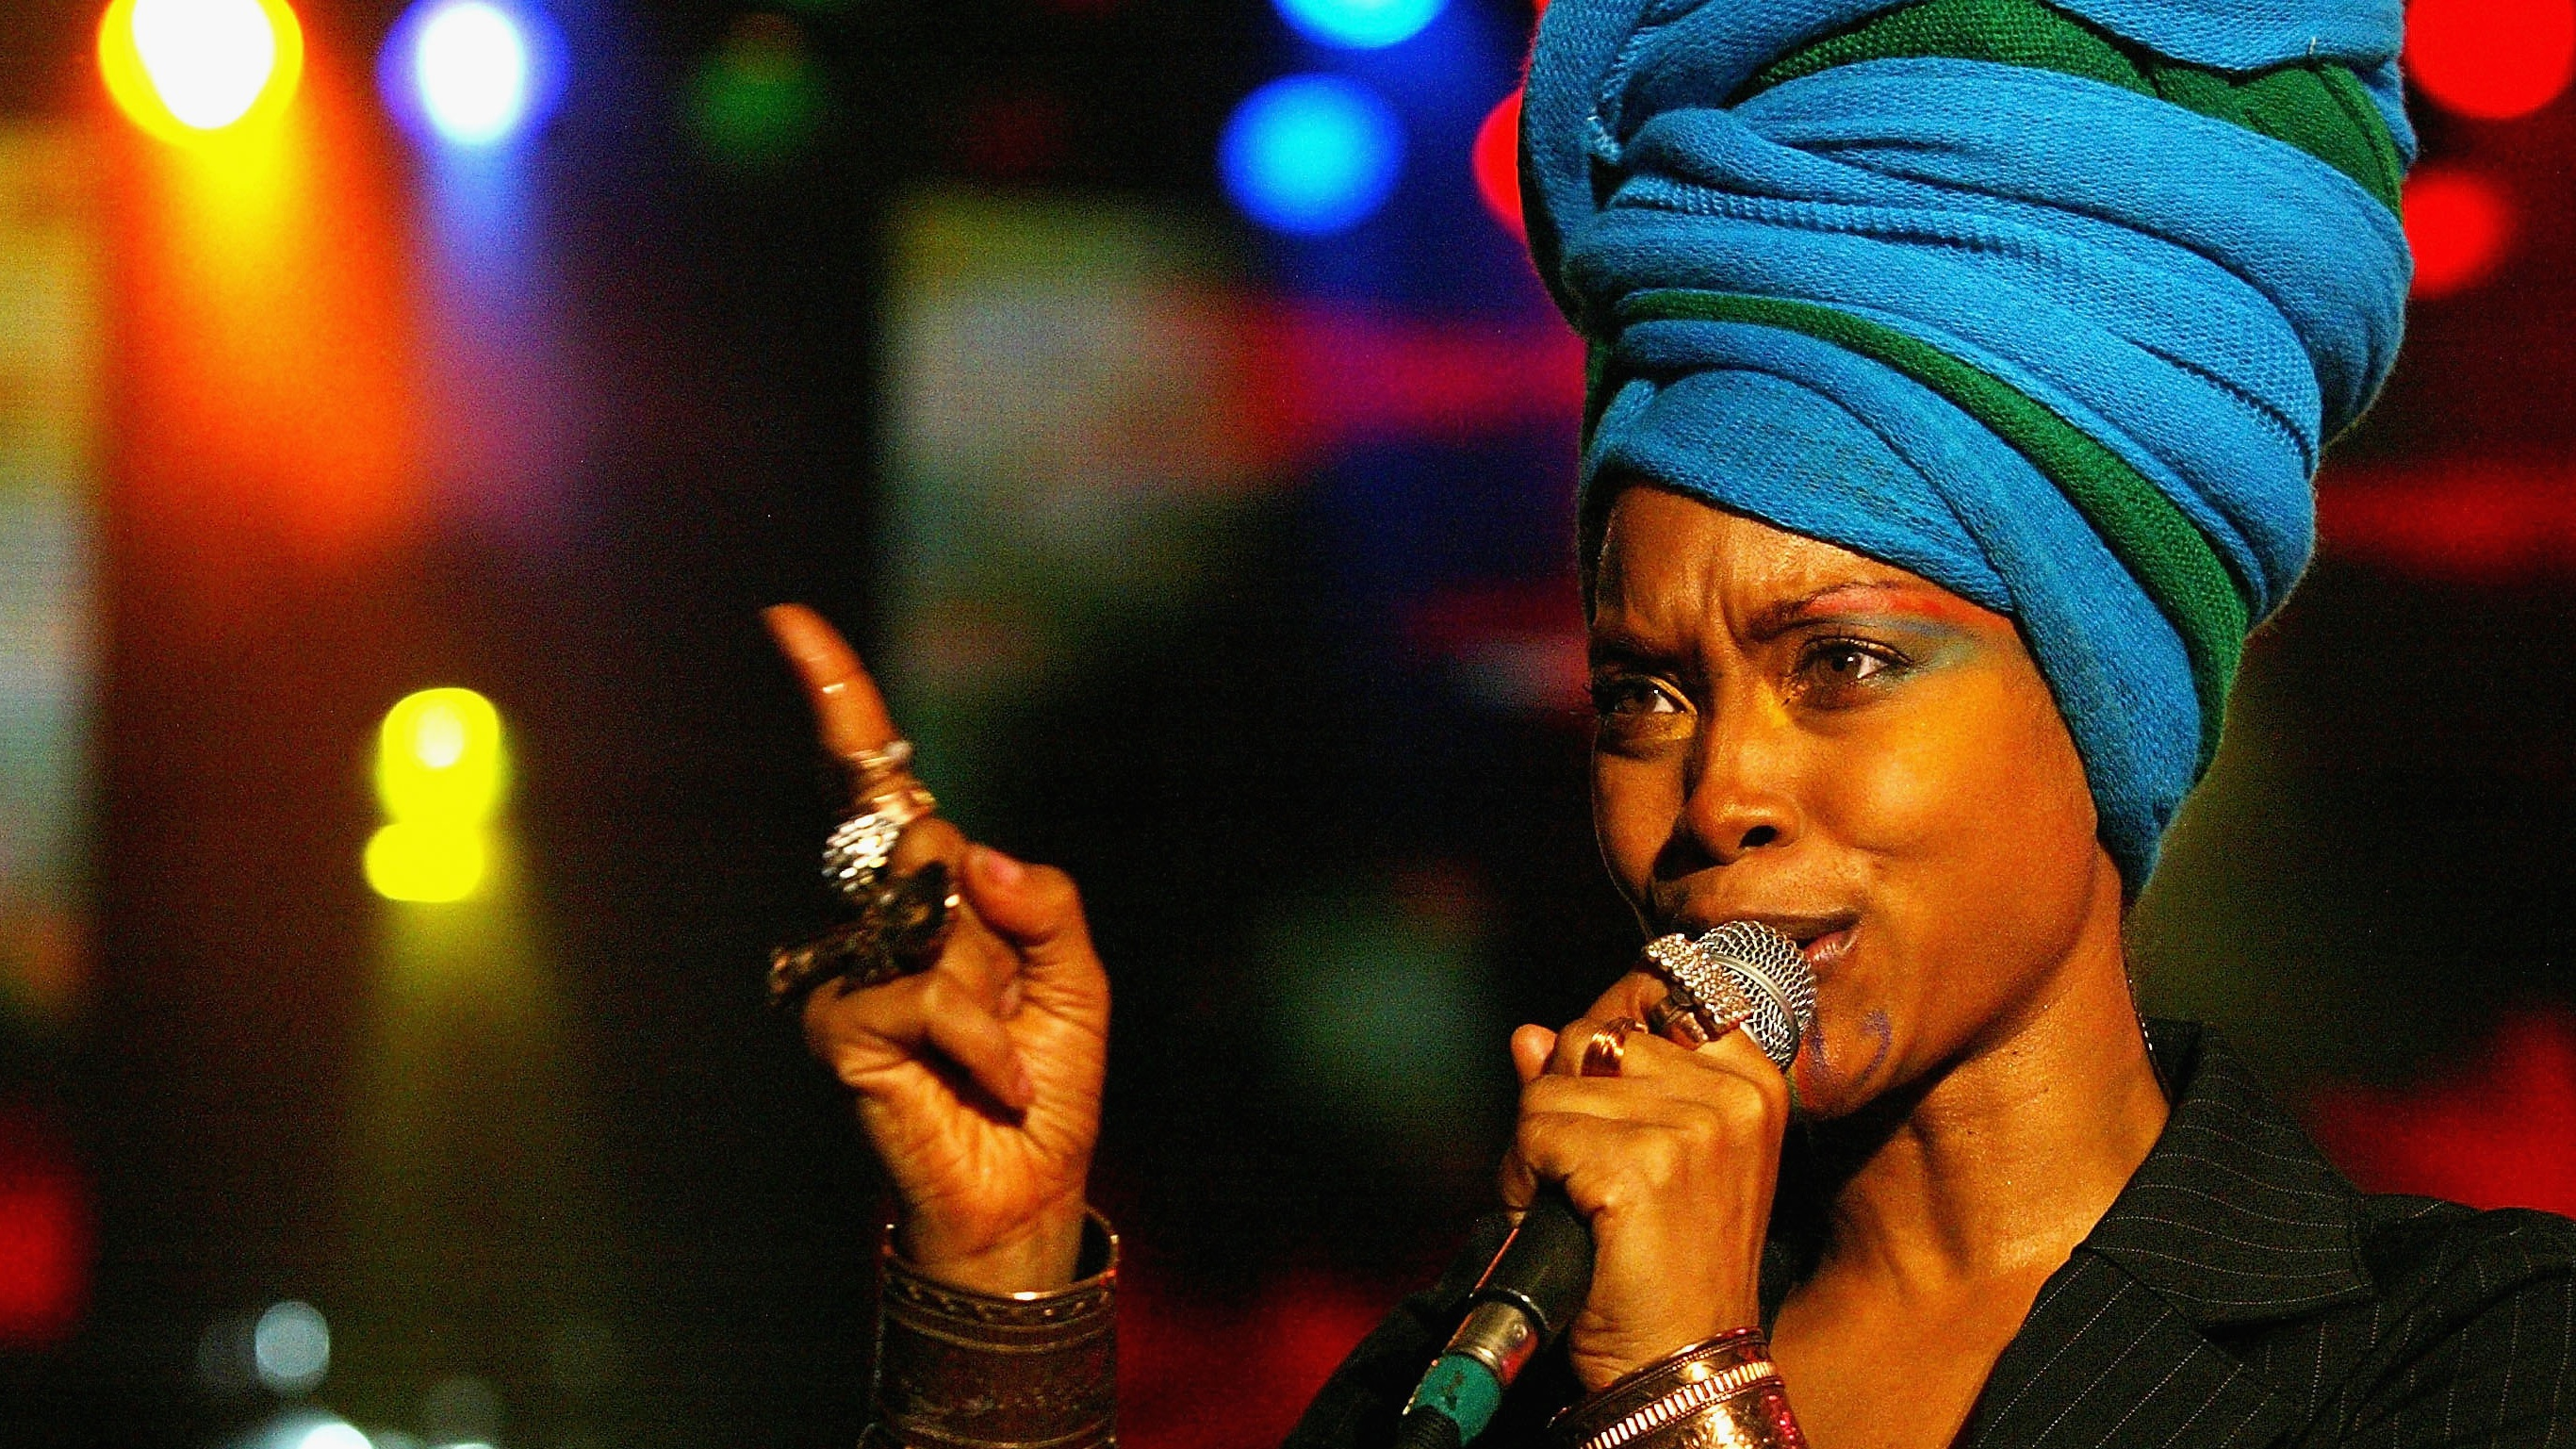 Singer Erykah Badu makes only $3.60 performing on New York street